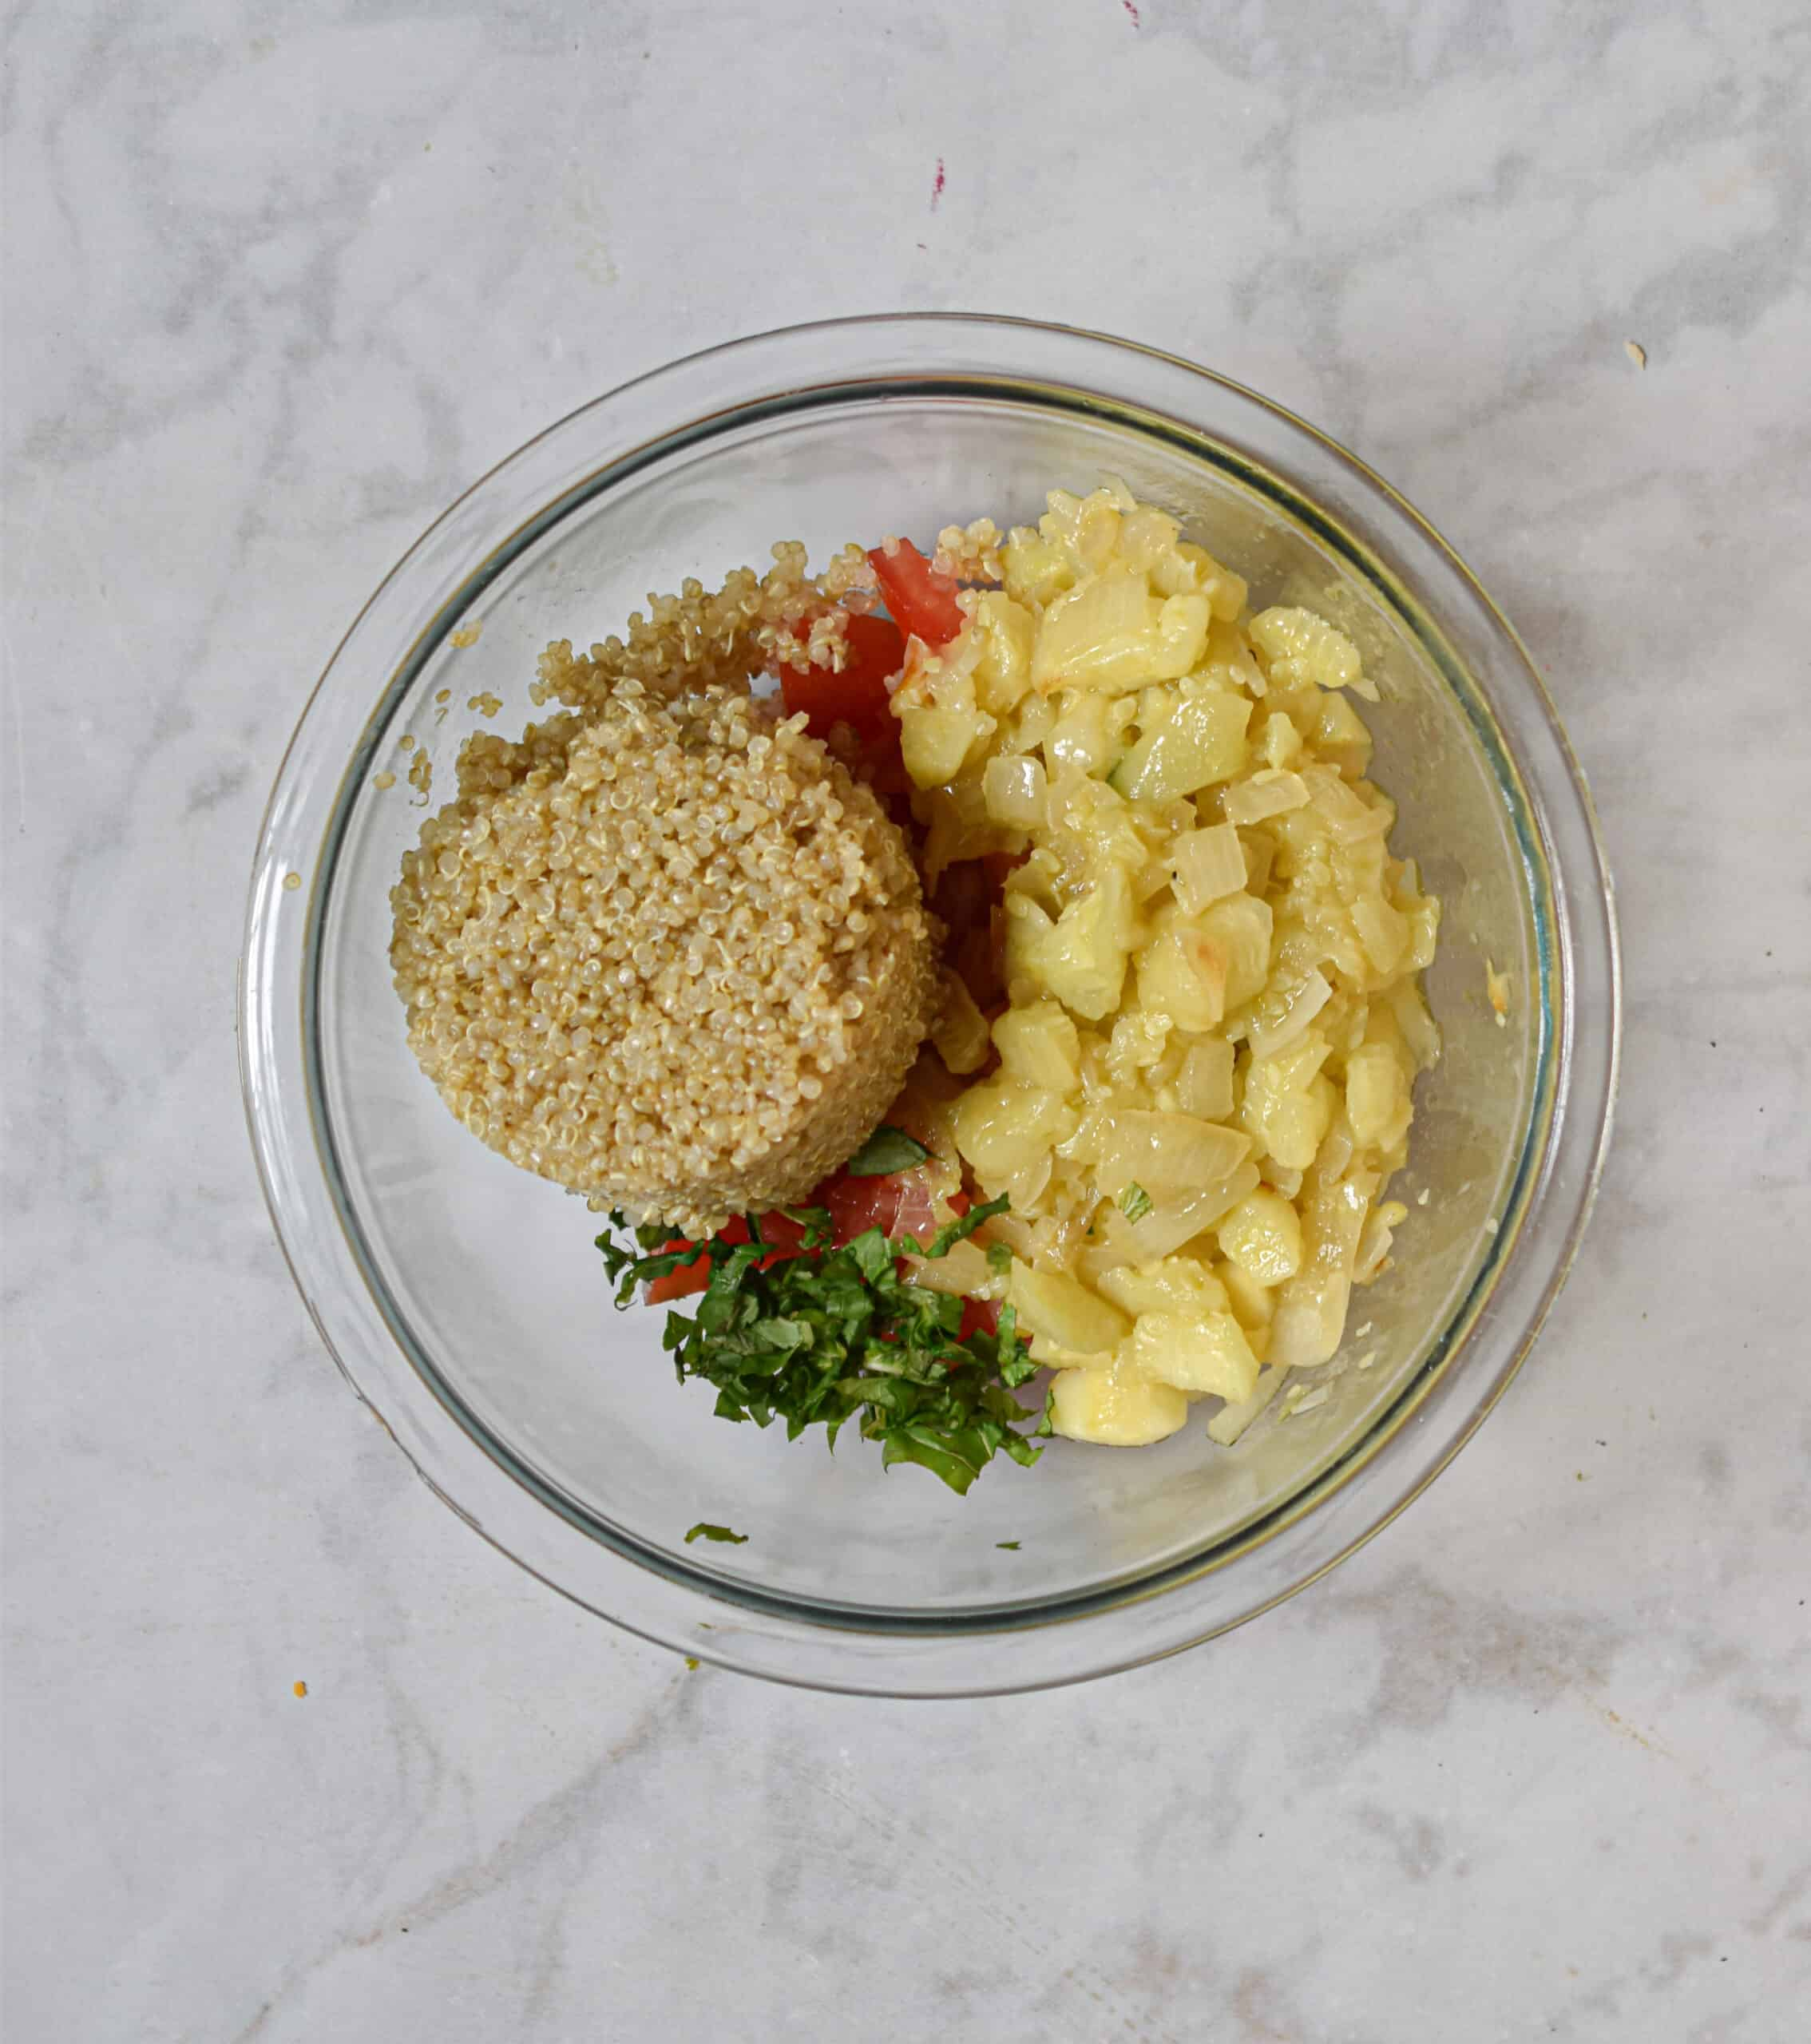 mix the quinoa, tomatoes, basil, and sautéed onions and zucchini together